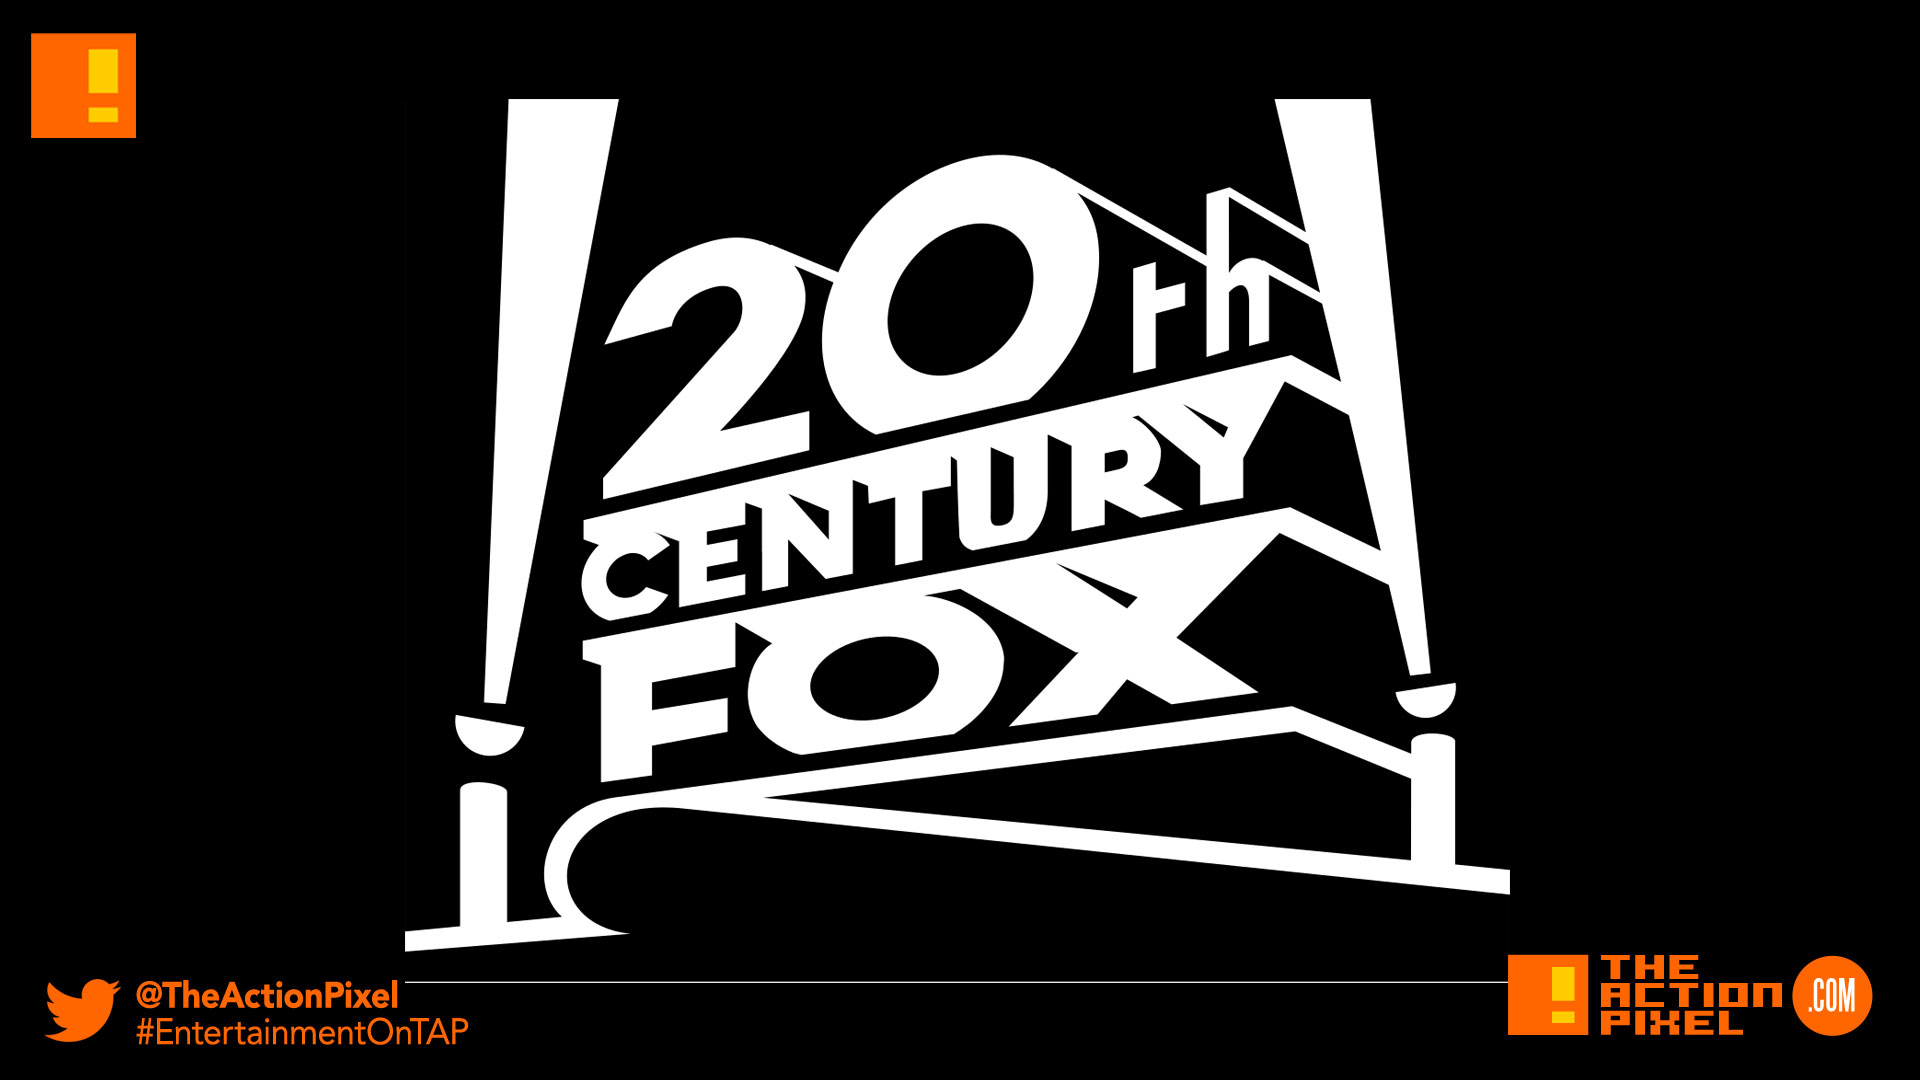 20th century fox, disney, fox, universal, sony, sony pictures, marvel, marvel comics, marvel studios, bid, bid wars, namor, universal, hulk, spider-man, fantastic four, x-men, deadpool, the action pixel, entertainment on tap